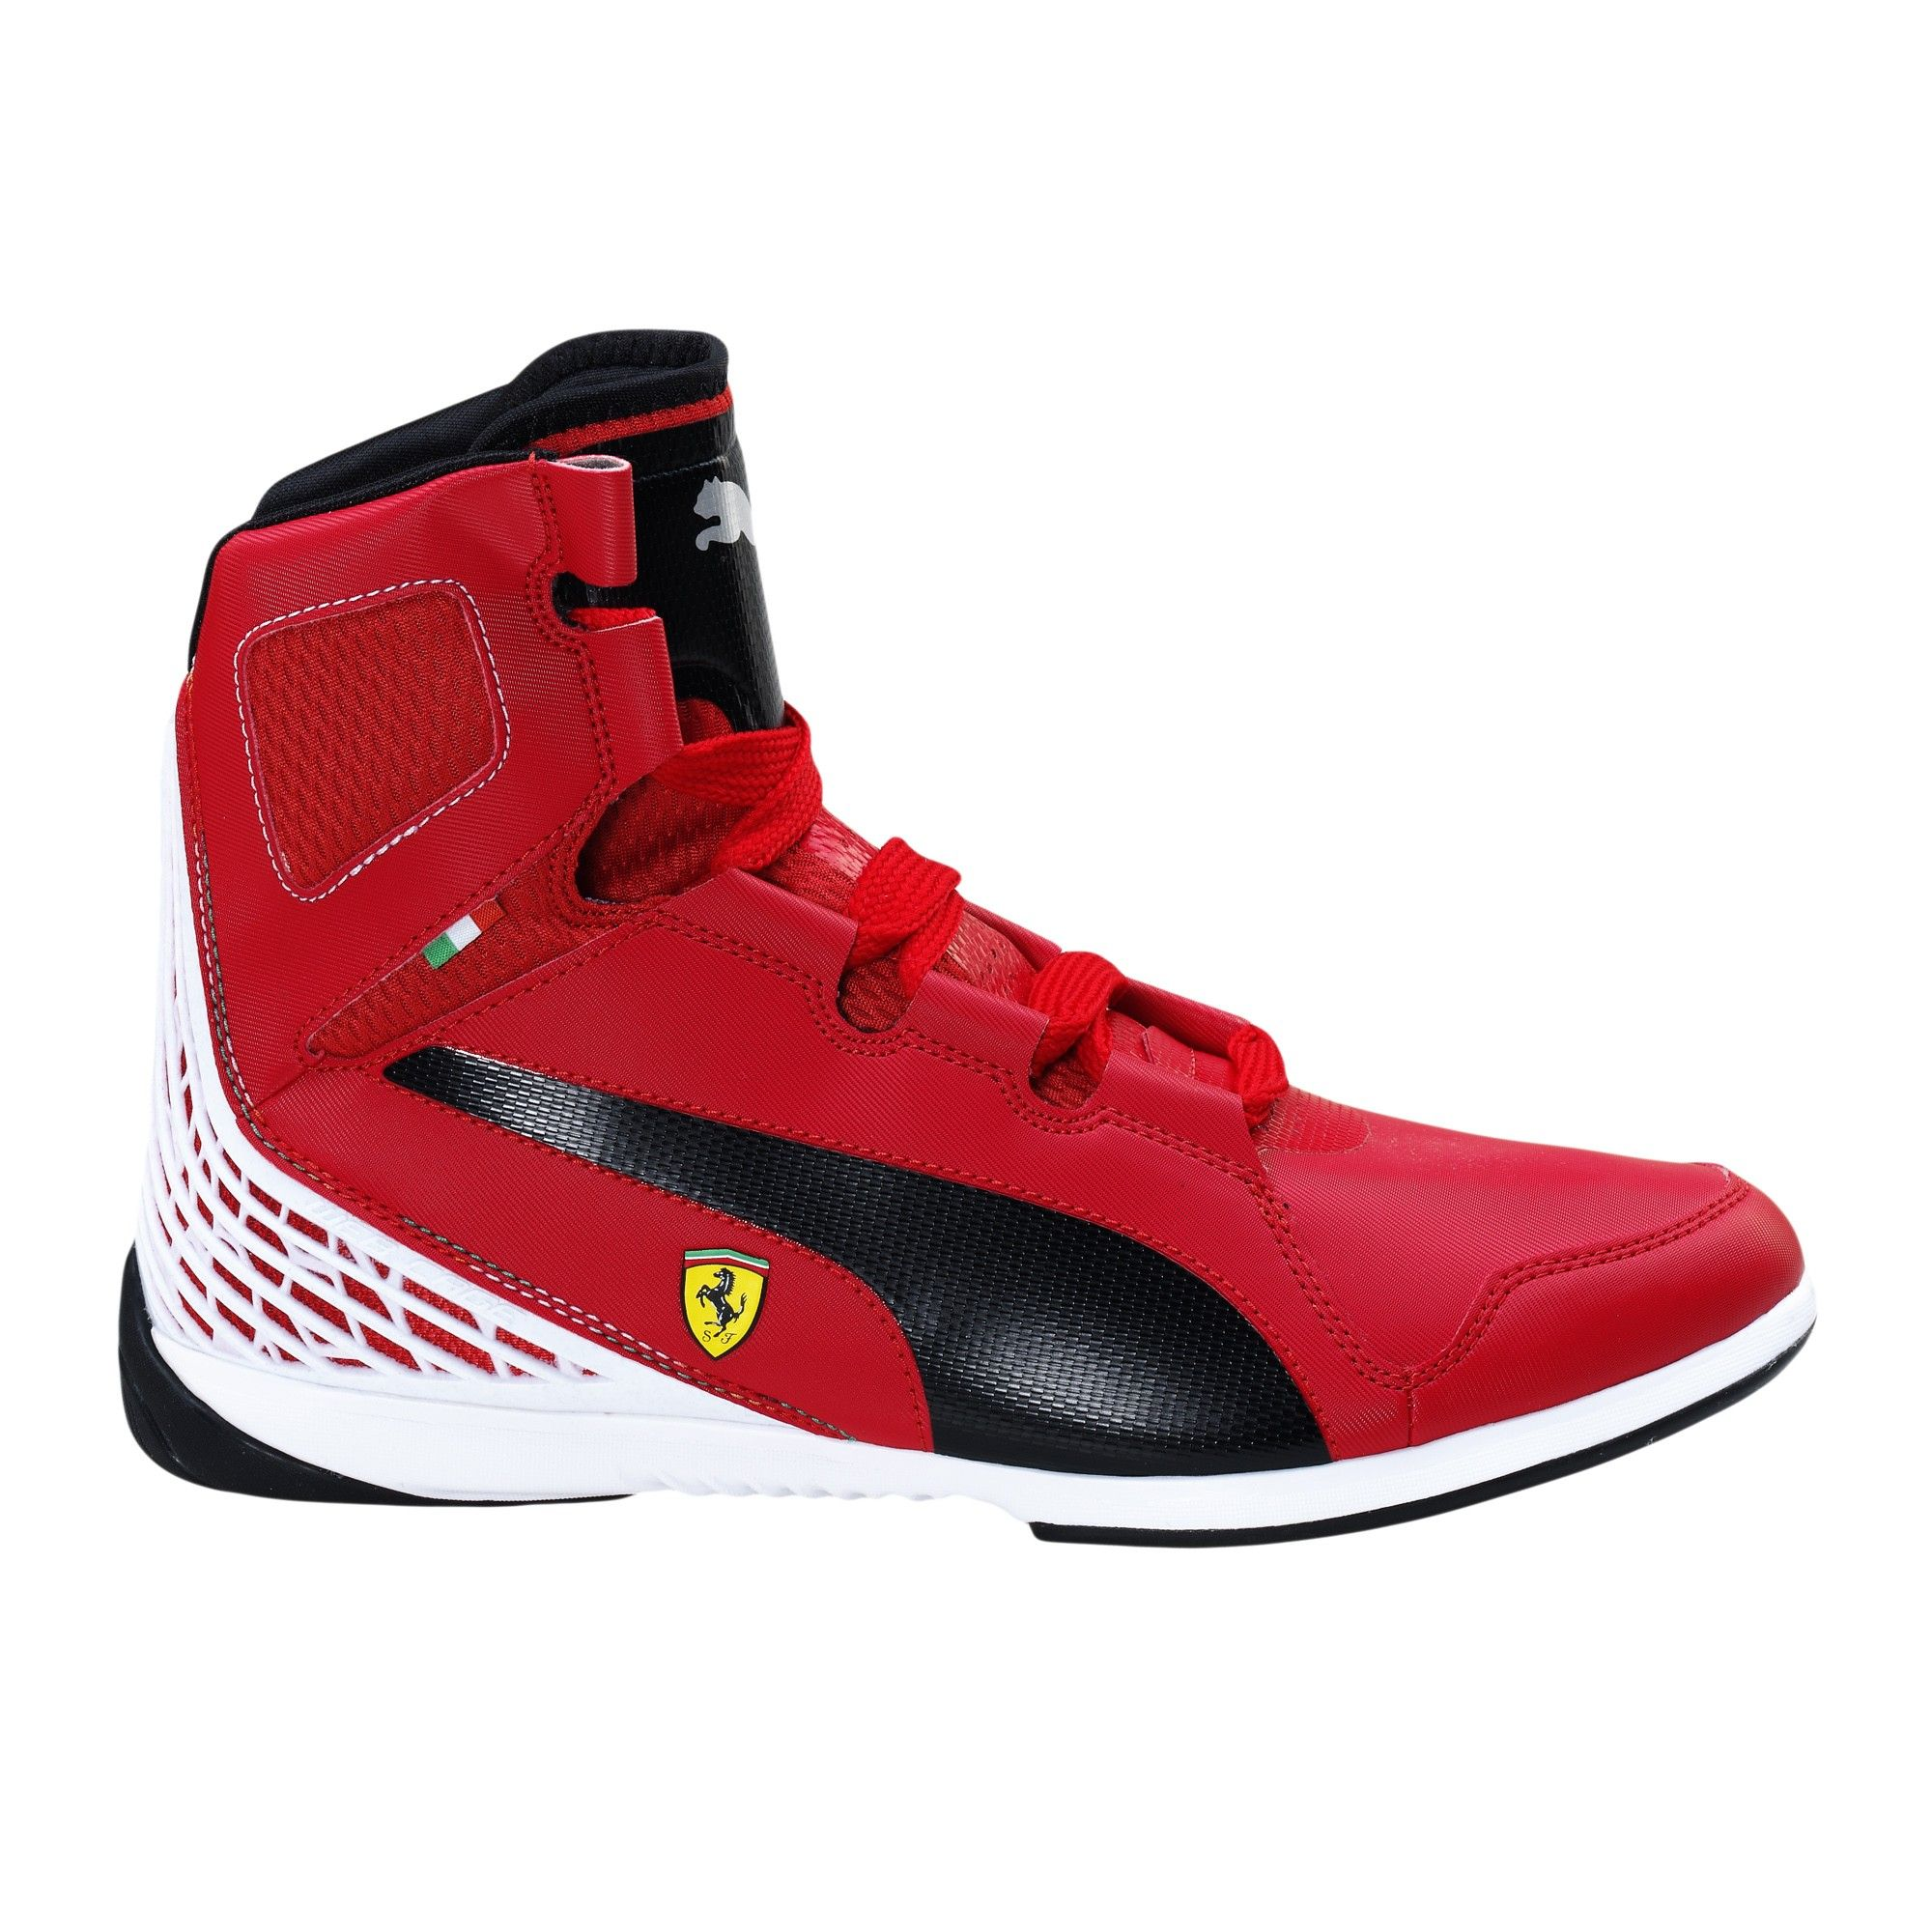 acd11527e9d Ferrari Store  Puma Valorosso Scuderia Ferrari WebCage. Shopping online the  official Ferrari Store and buy Puma Valorosso Scuderia Ferrari WebCage  safely in ...